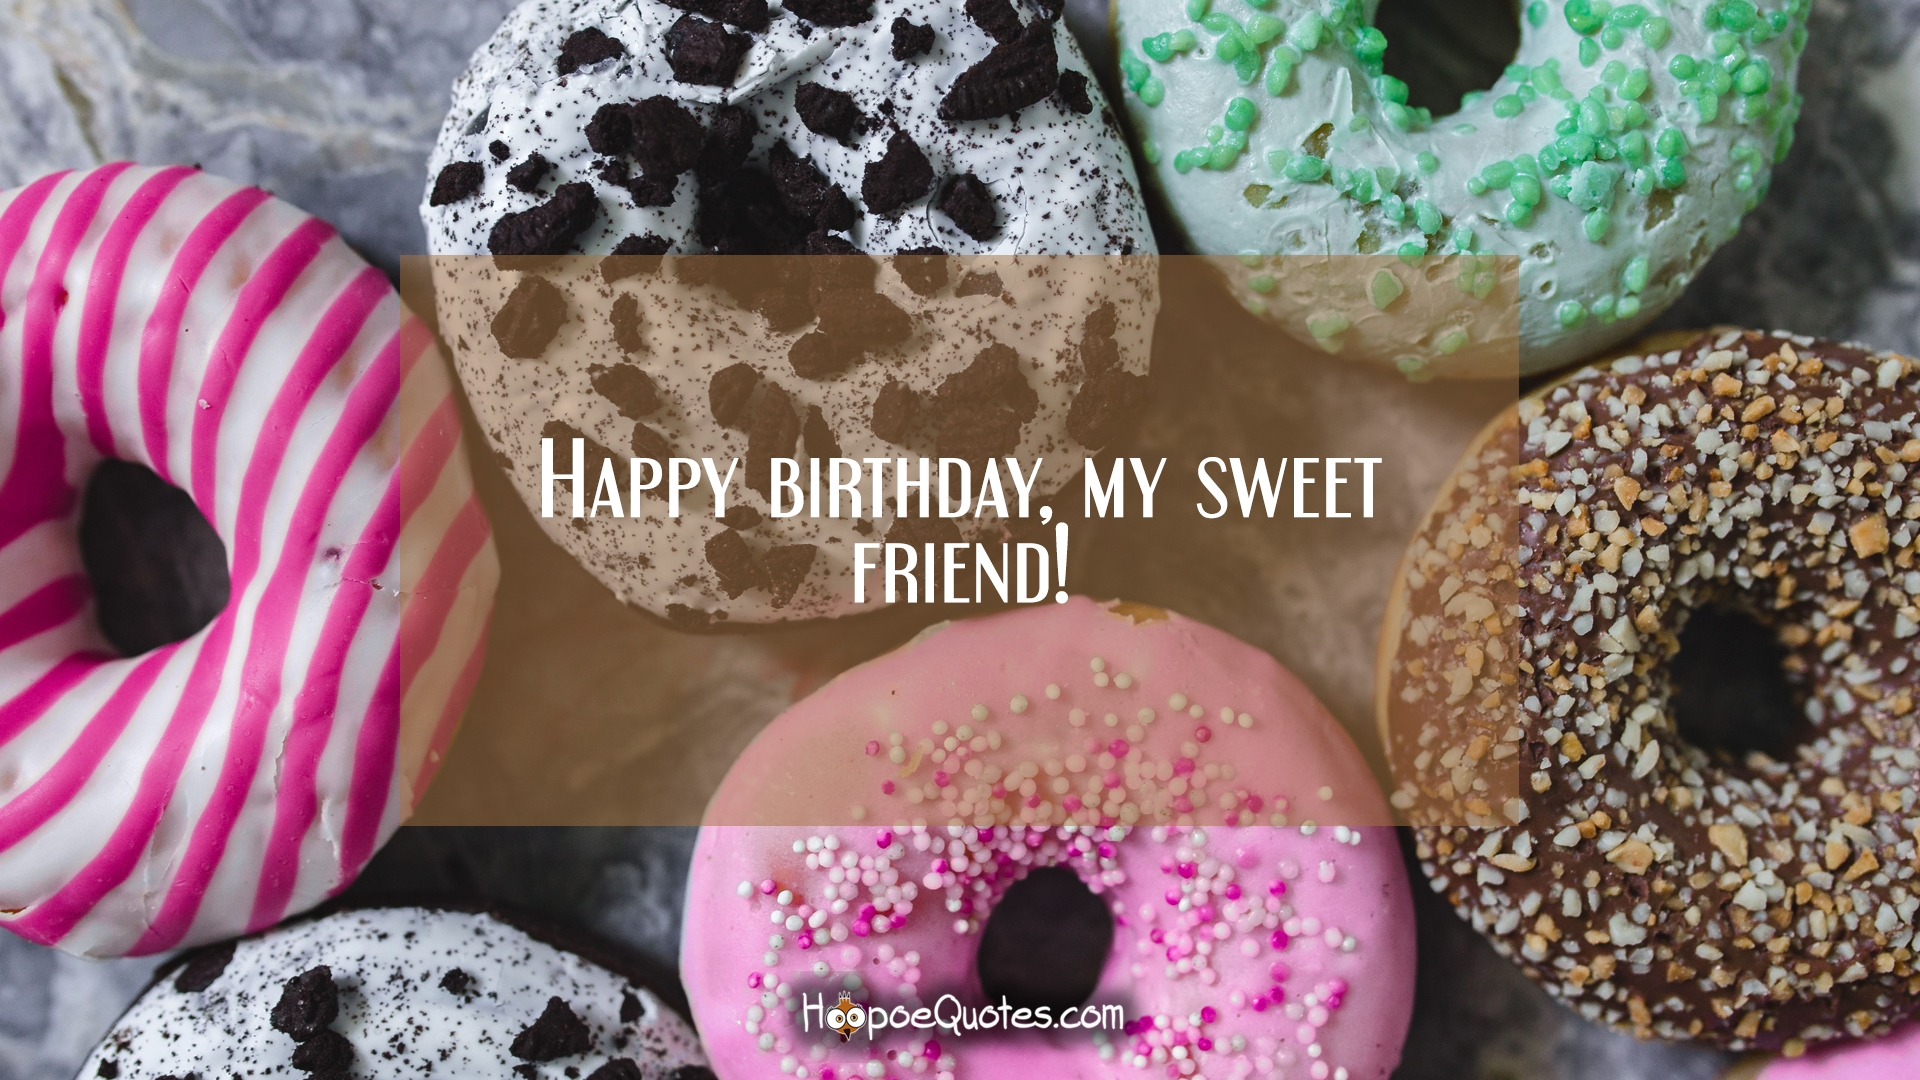 happy birthday sweet friend images ; 50d01451561b912673a155595d633db5